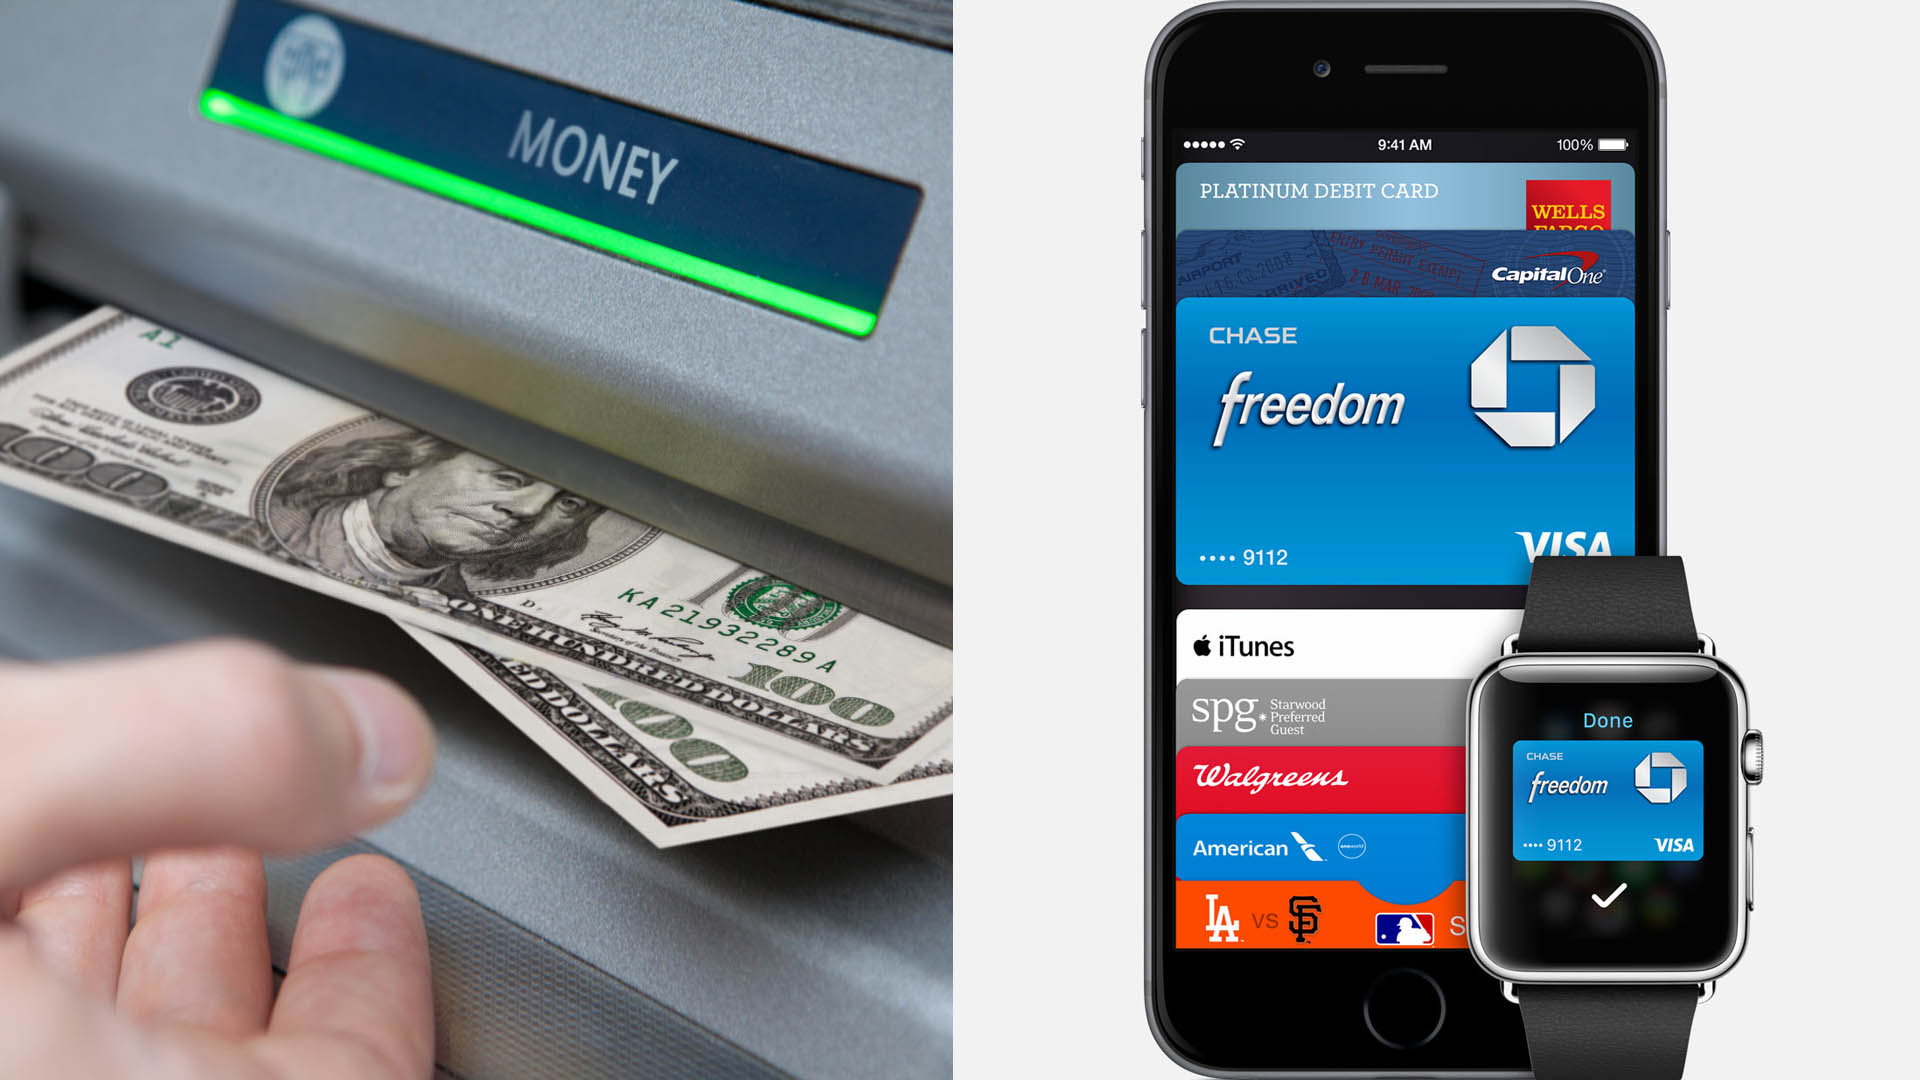 Wells Fargo to add NFC-based Mobile Payments to Banking App